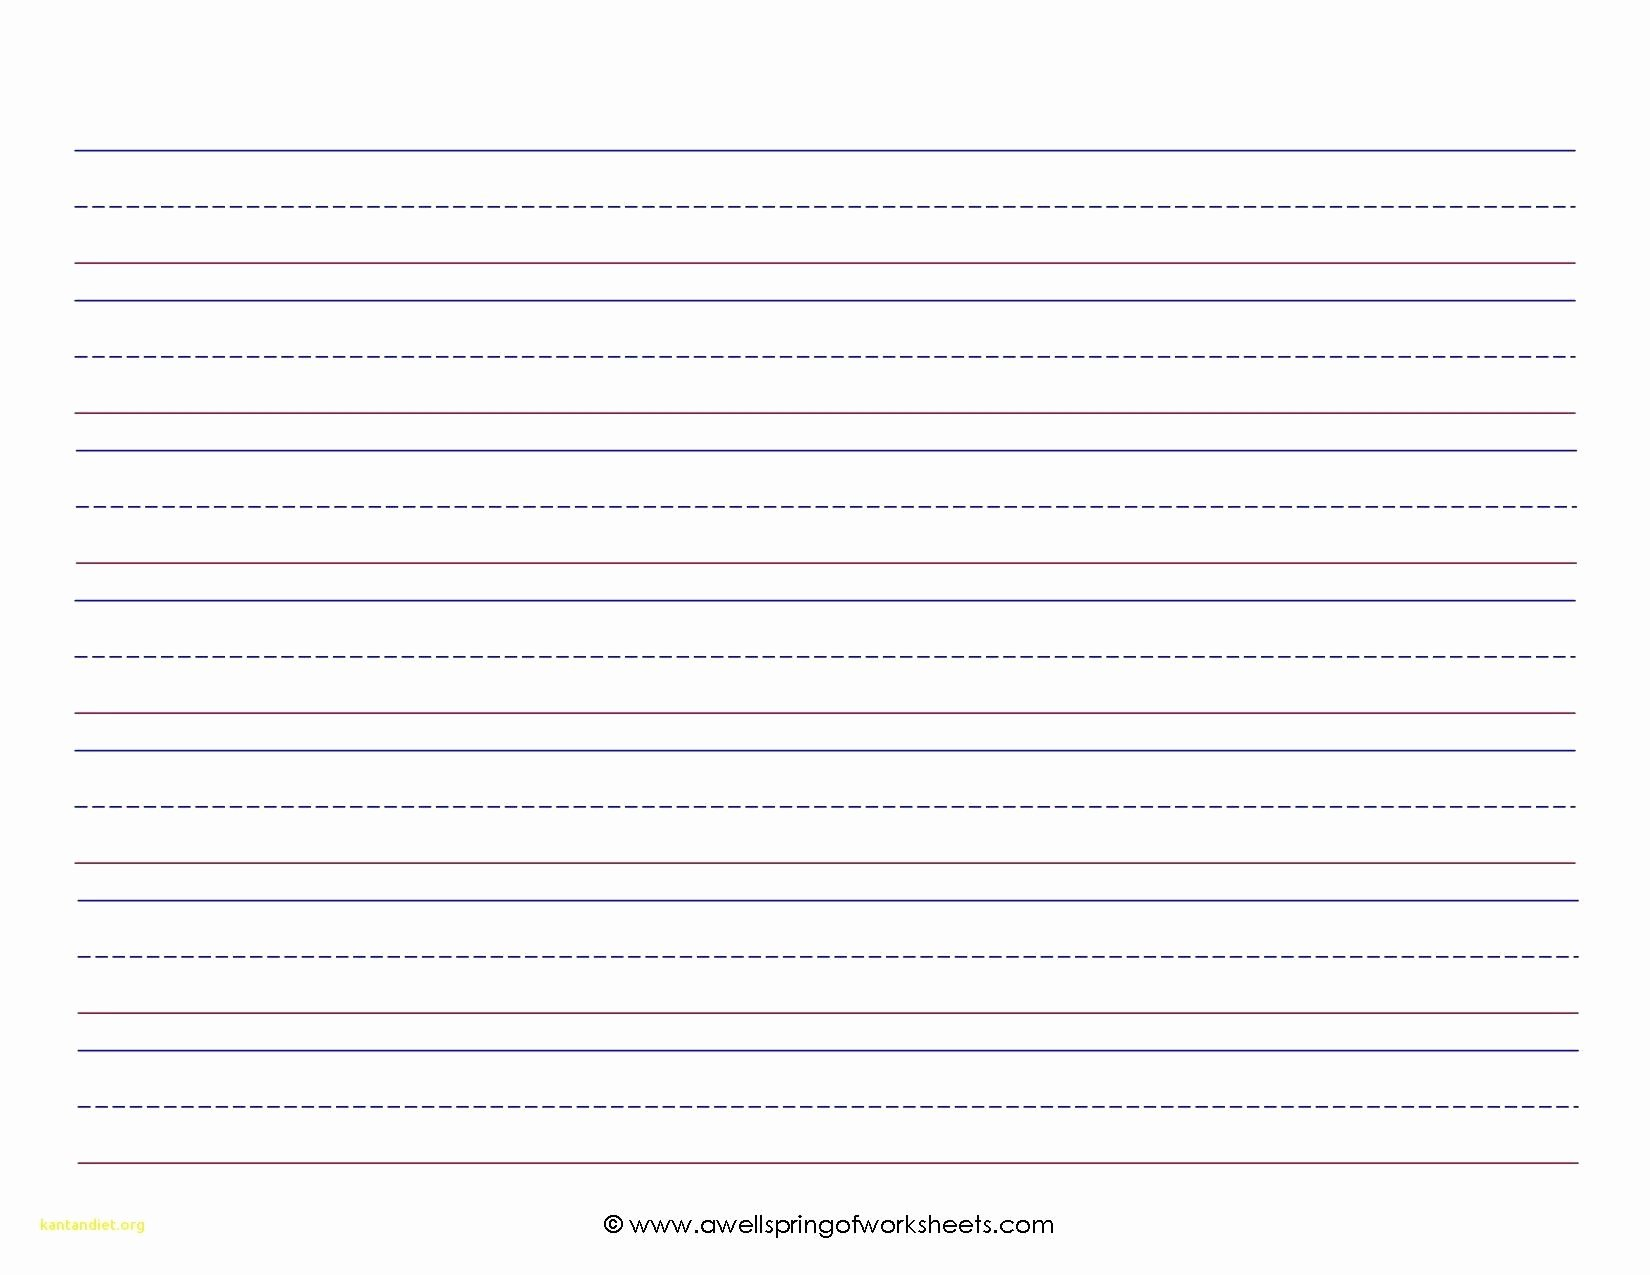 Kindergarten Letter Writing Paper Lovely Beautiful Kindergarten Lined Paper Template Kindergarten